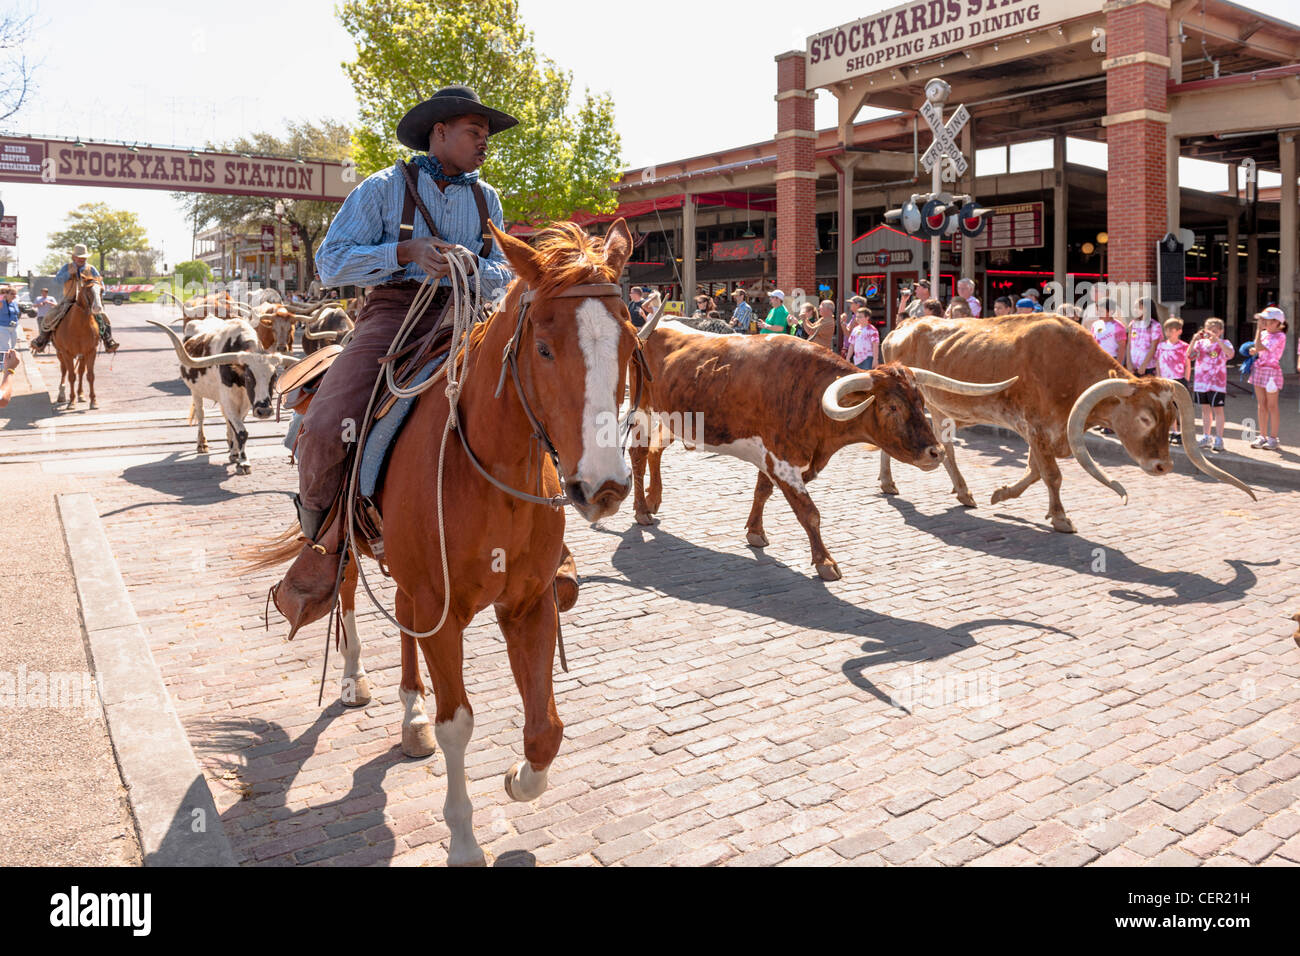 Stockyards station Cattle Drive, Fort worthStock Photo